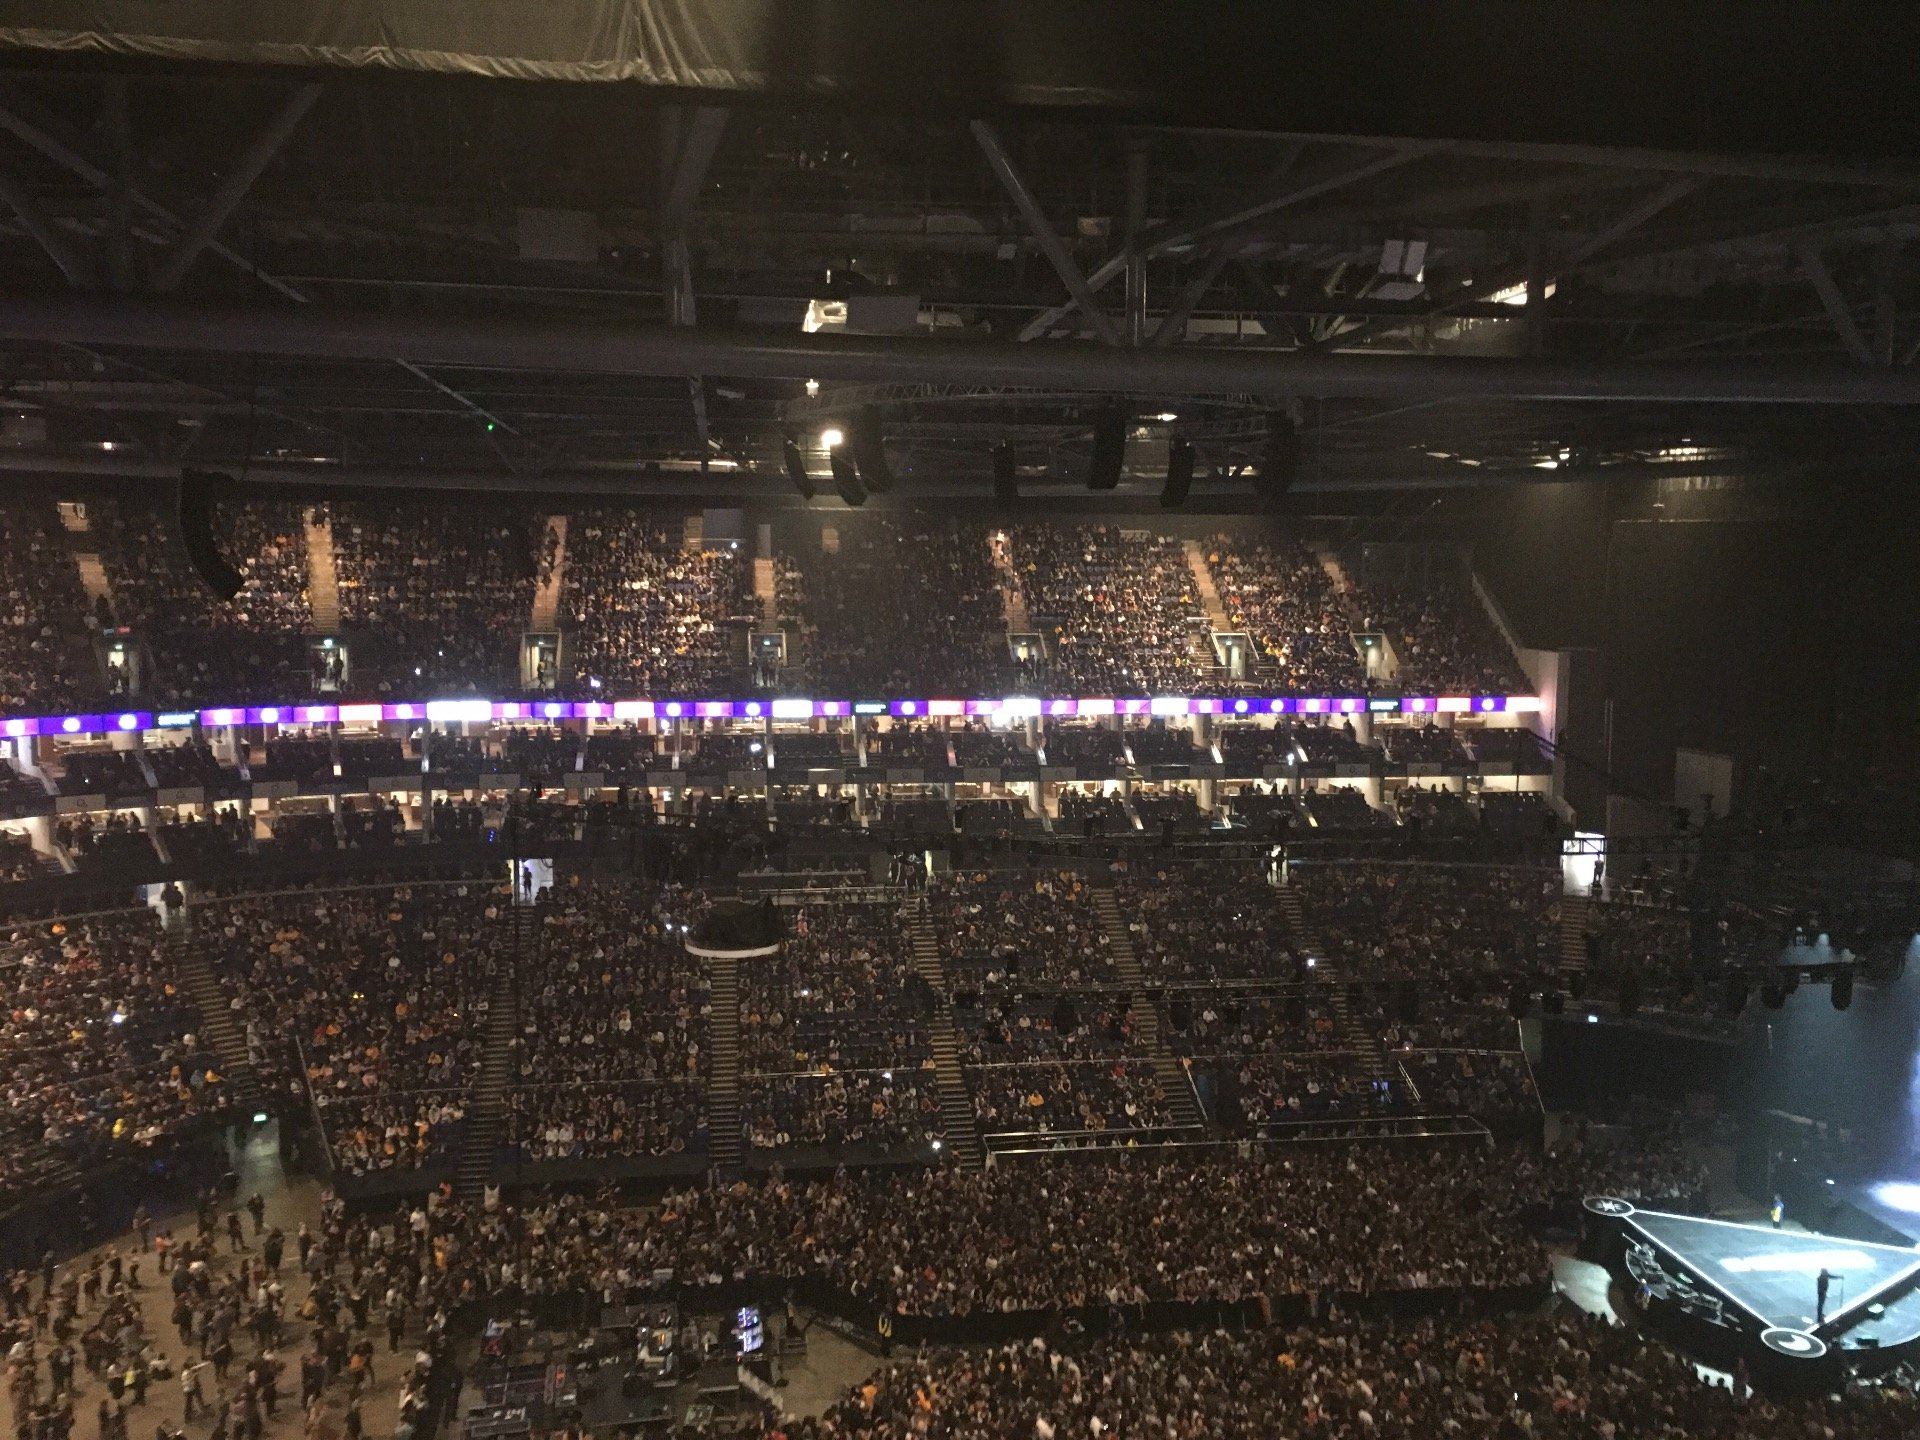 The O2 Arena Section 419 Row N Seat 899-898